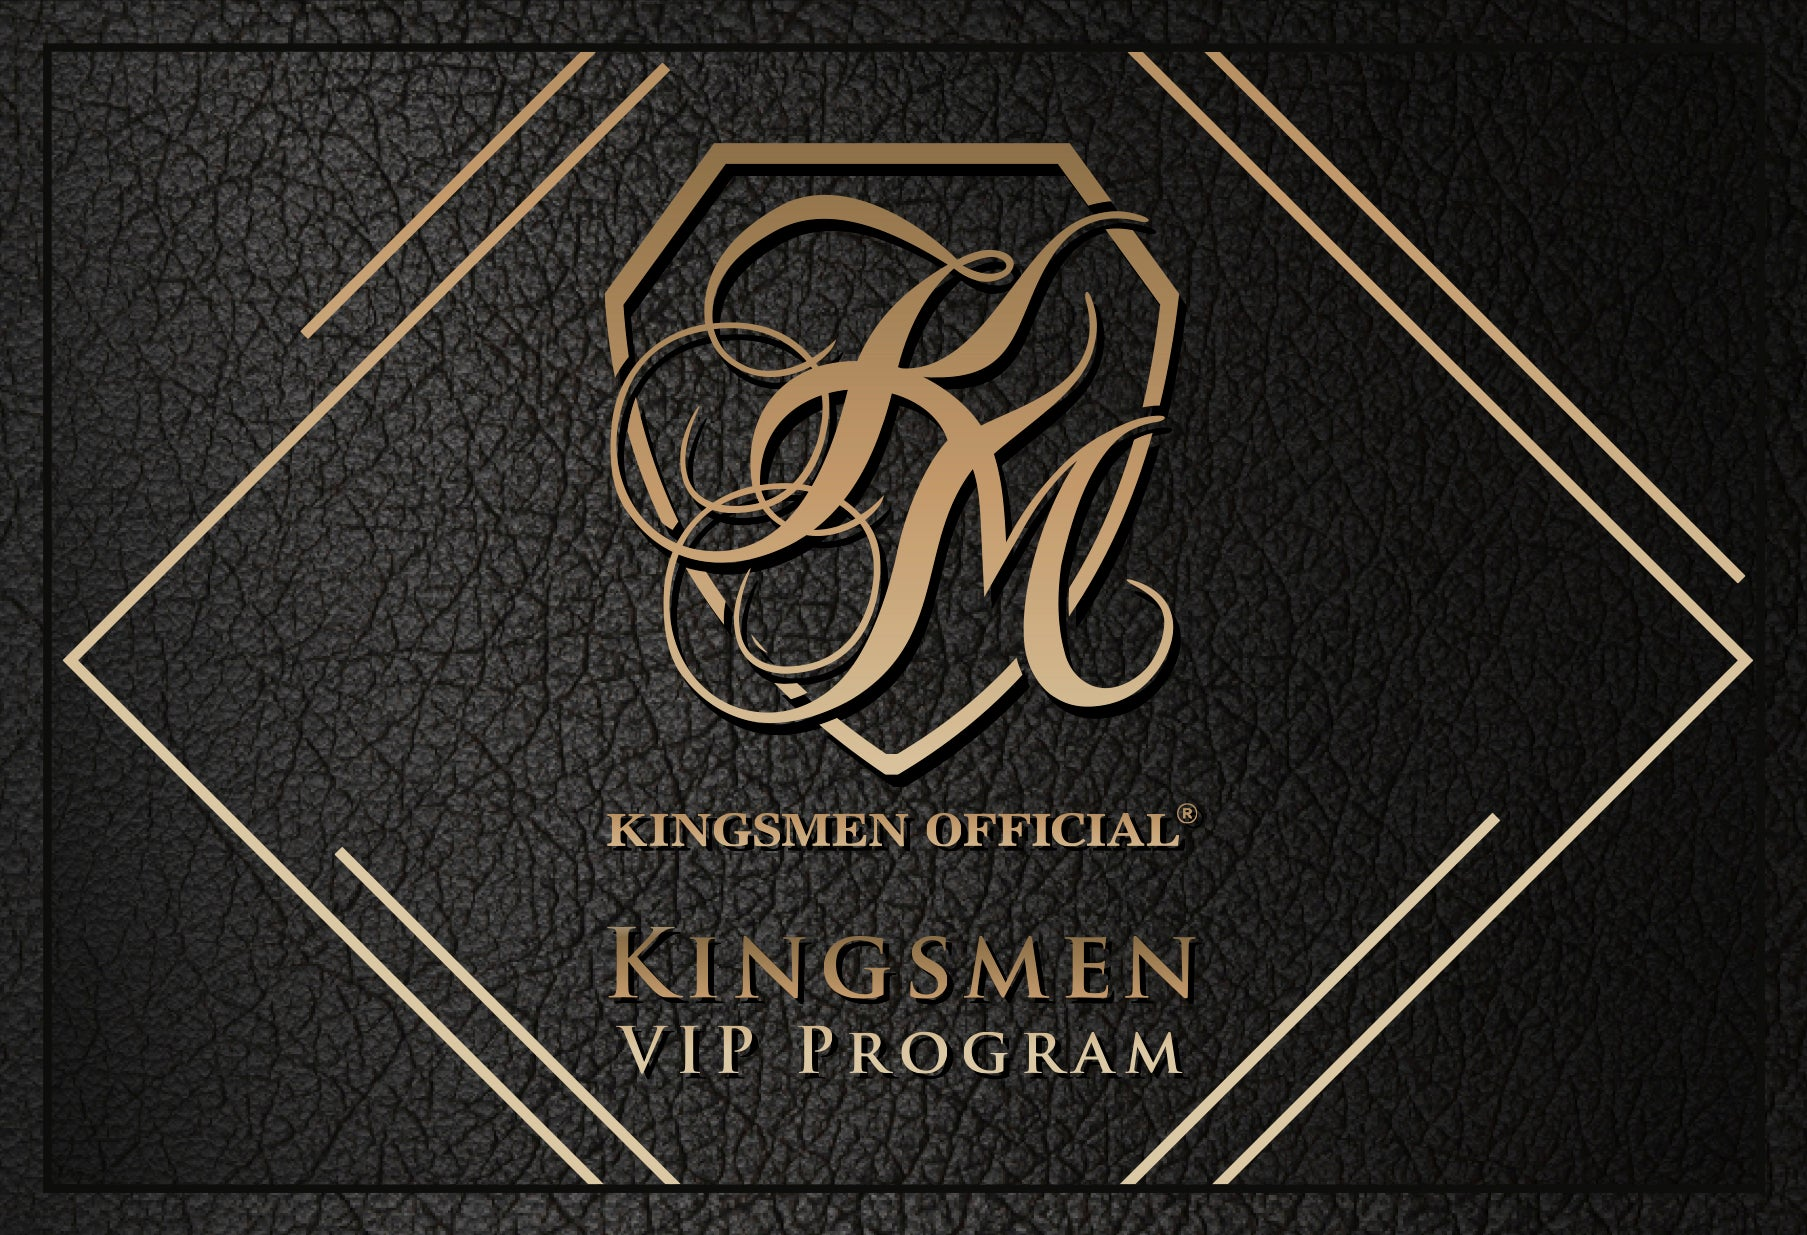 kingsmen vip program afbeelding